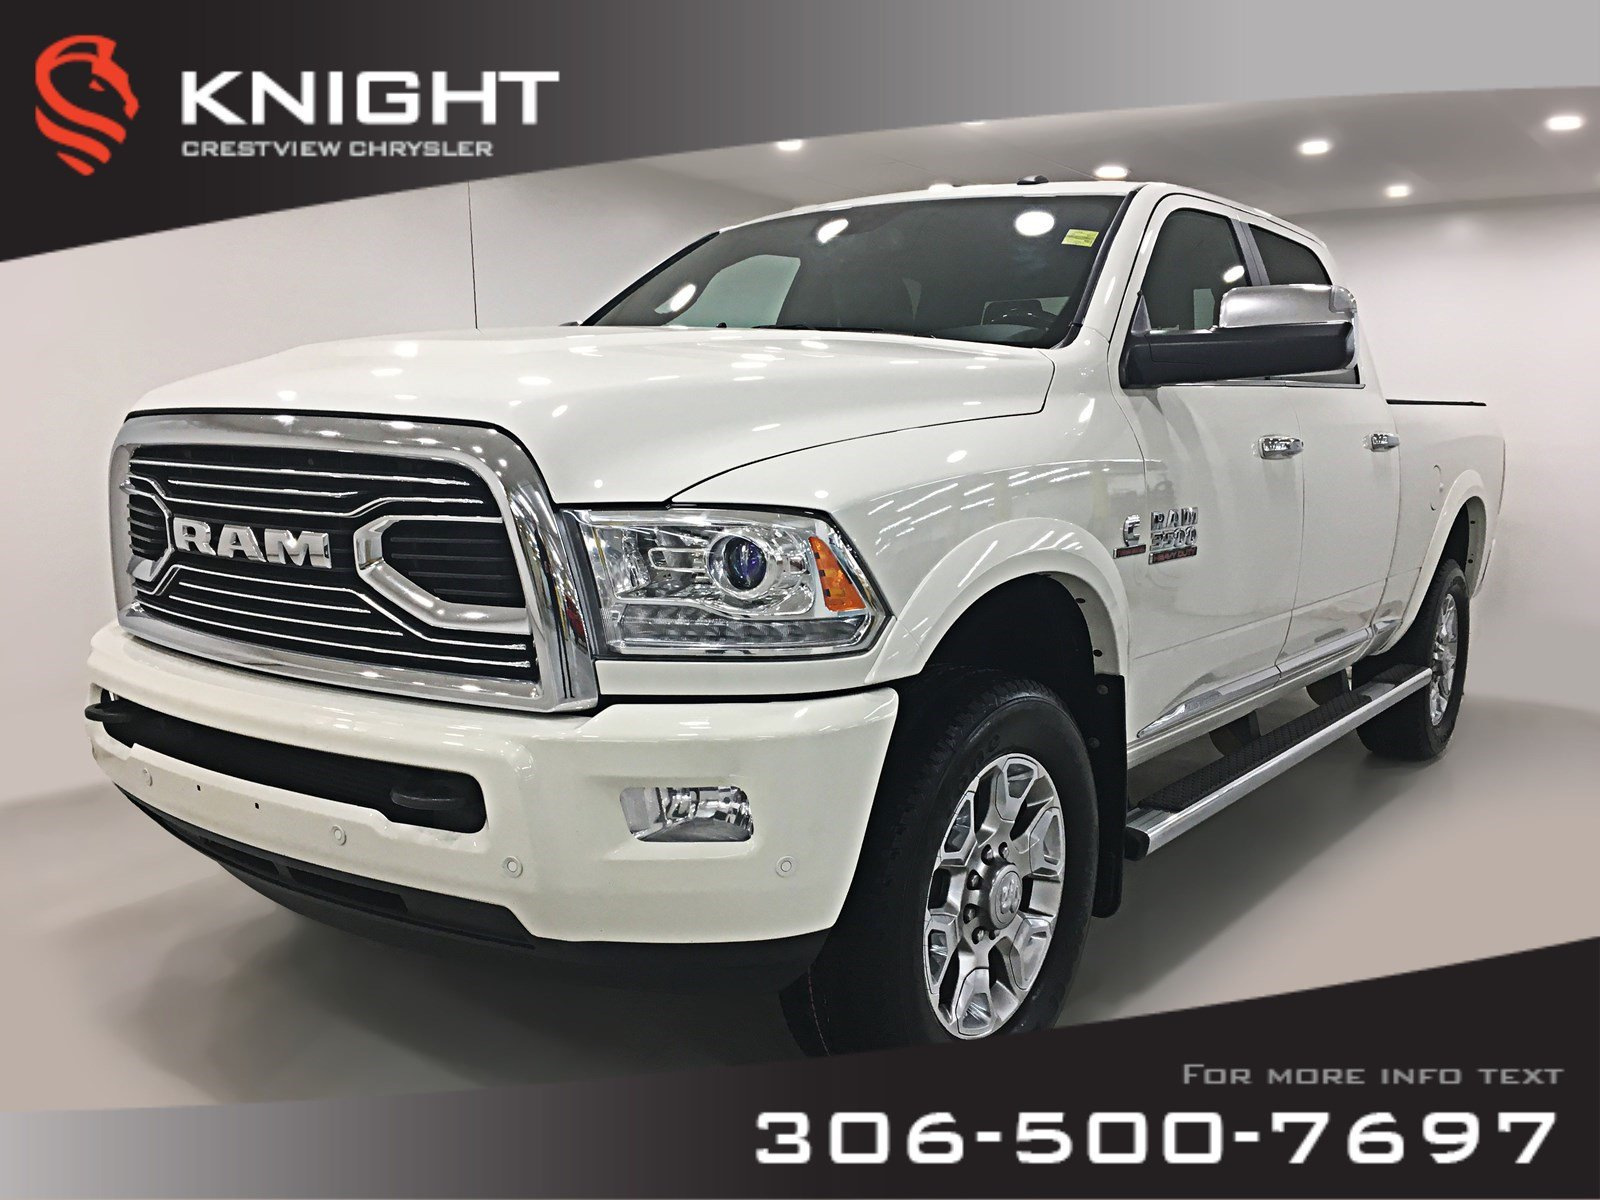 Certified Pre-Owned 2016 Ram 3500 Longhorn Limited Crew Cab | Sunroof | Navigation